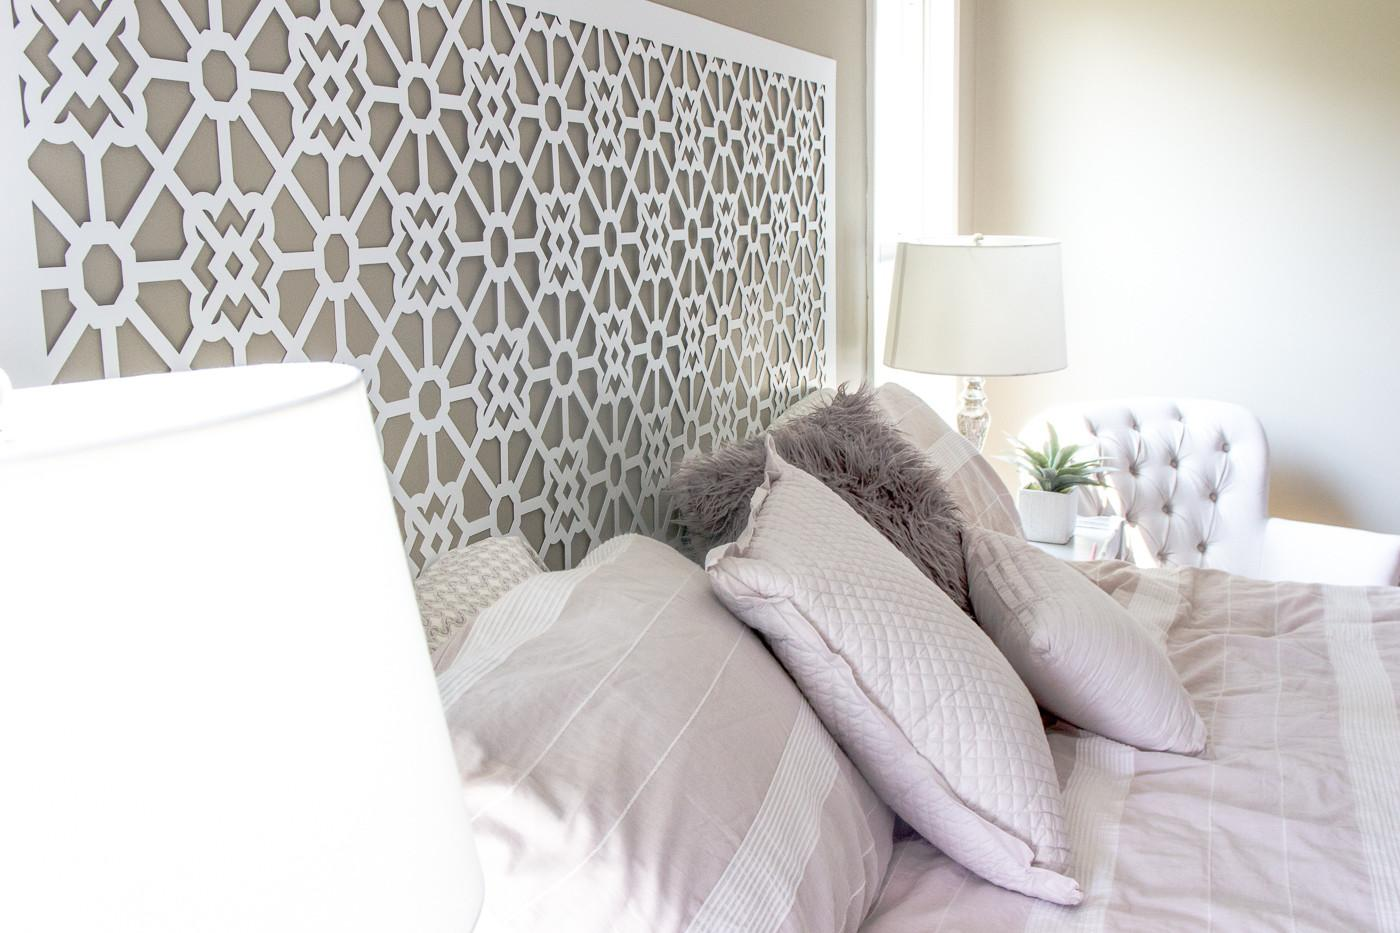 Our Moroccan Style Headboard Shining Design